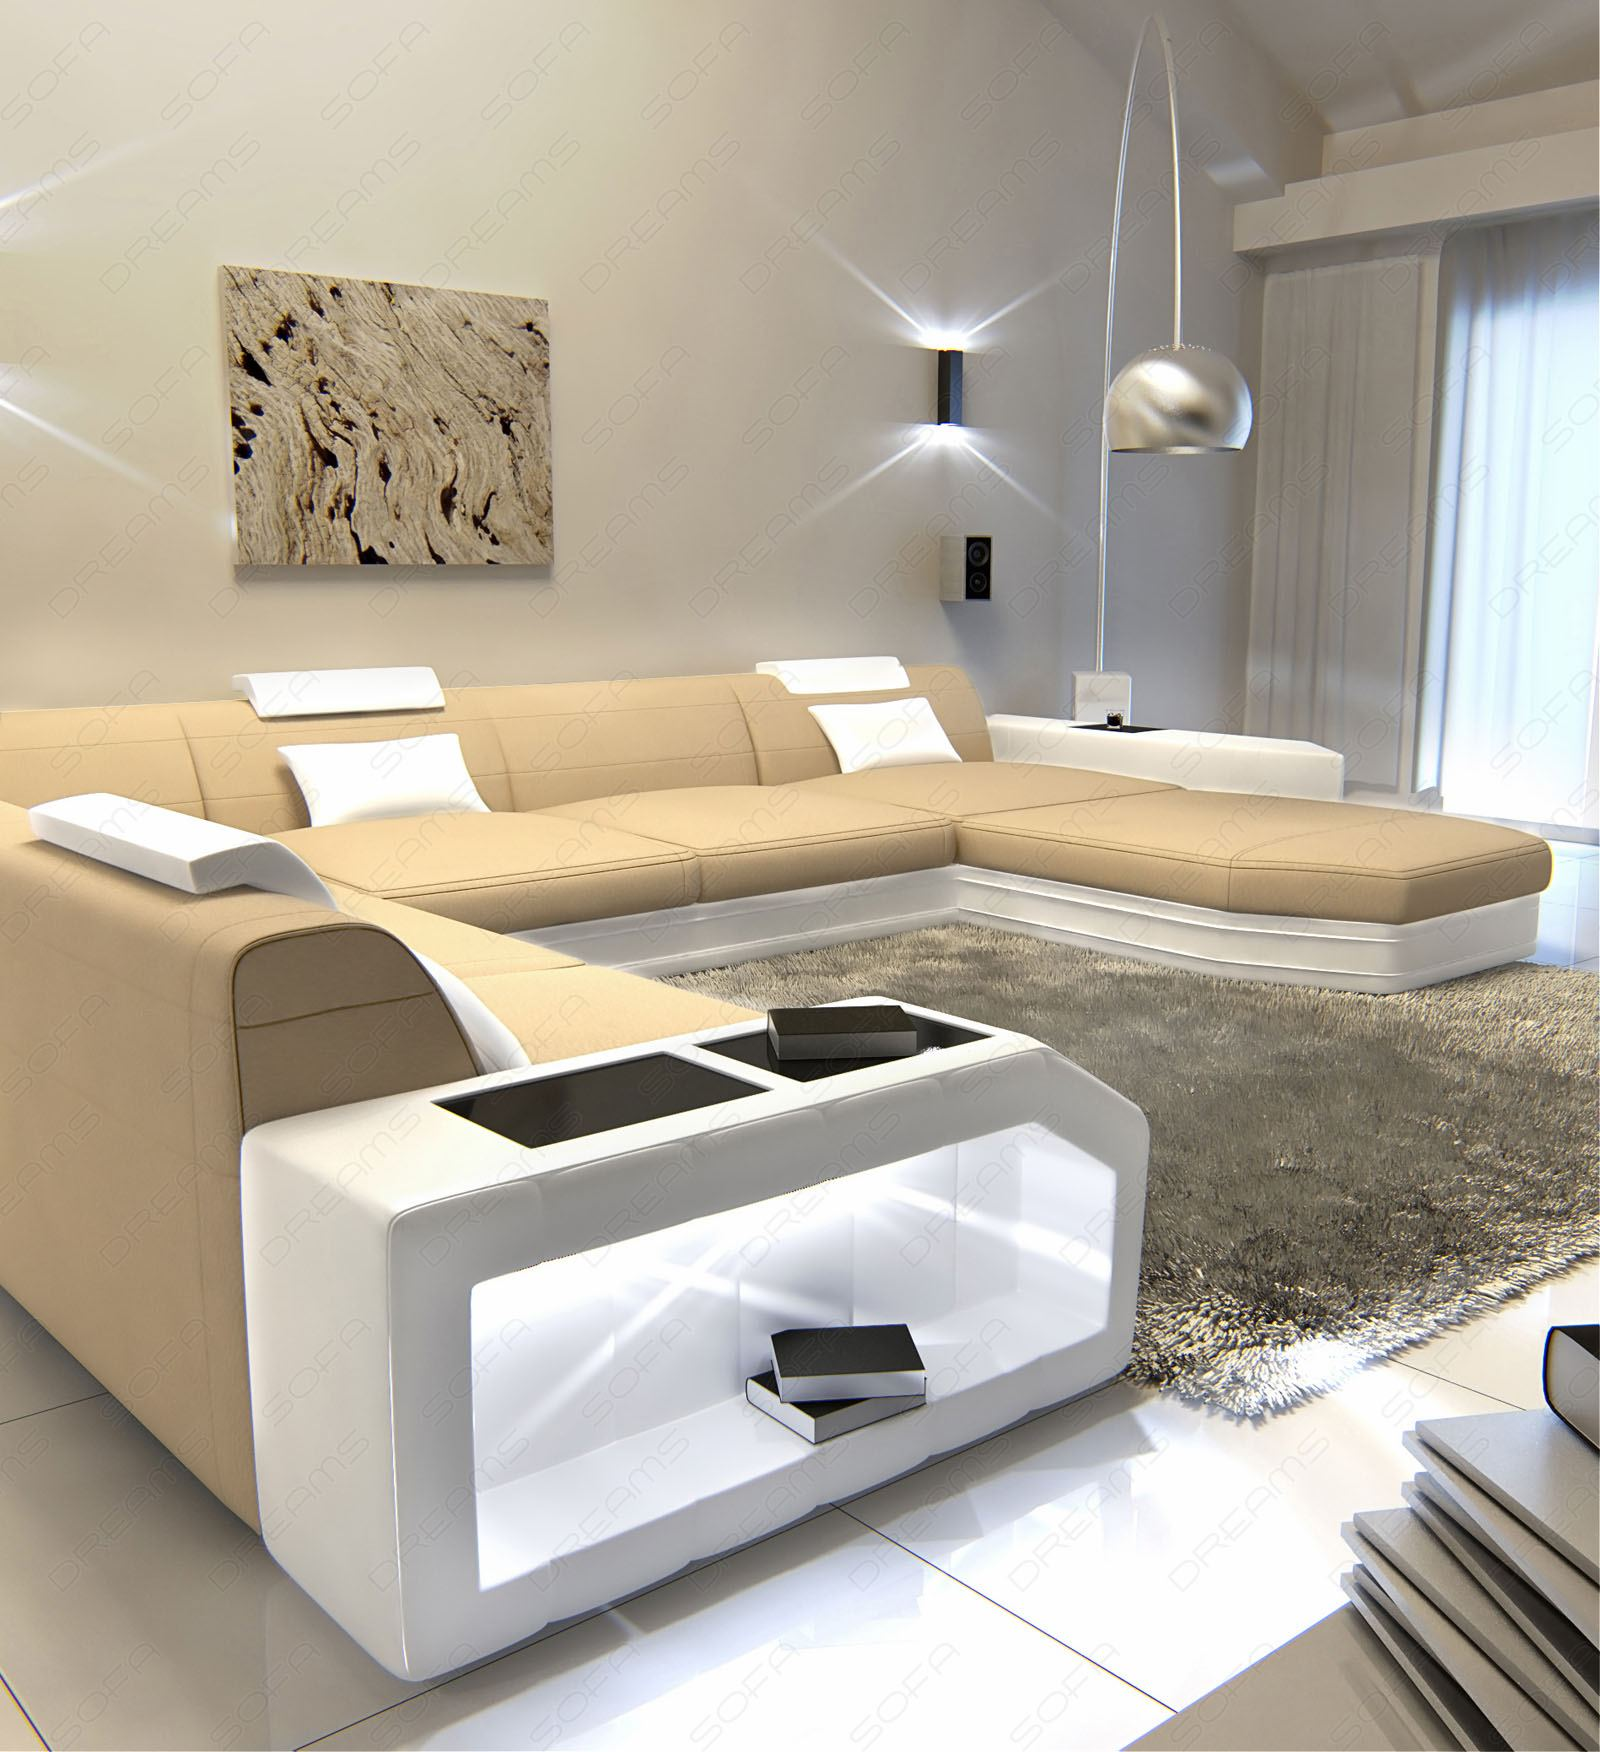 polstersofa wohnlandschaft stoff prato u form stoffcouch weiss beige ebay. Black Bedroom Furniture Sets. Home Design Ideas